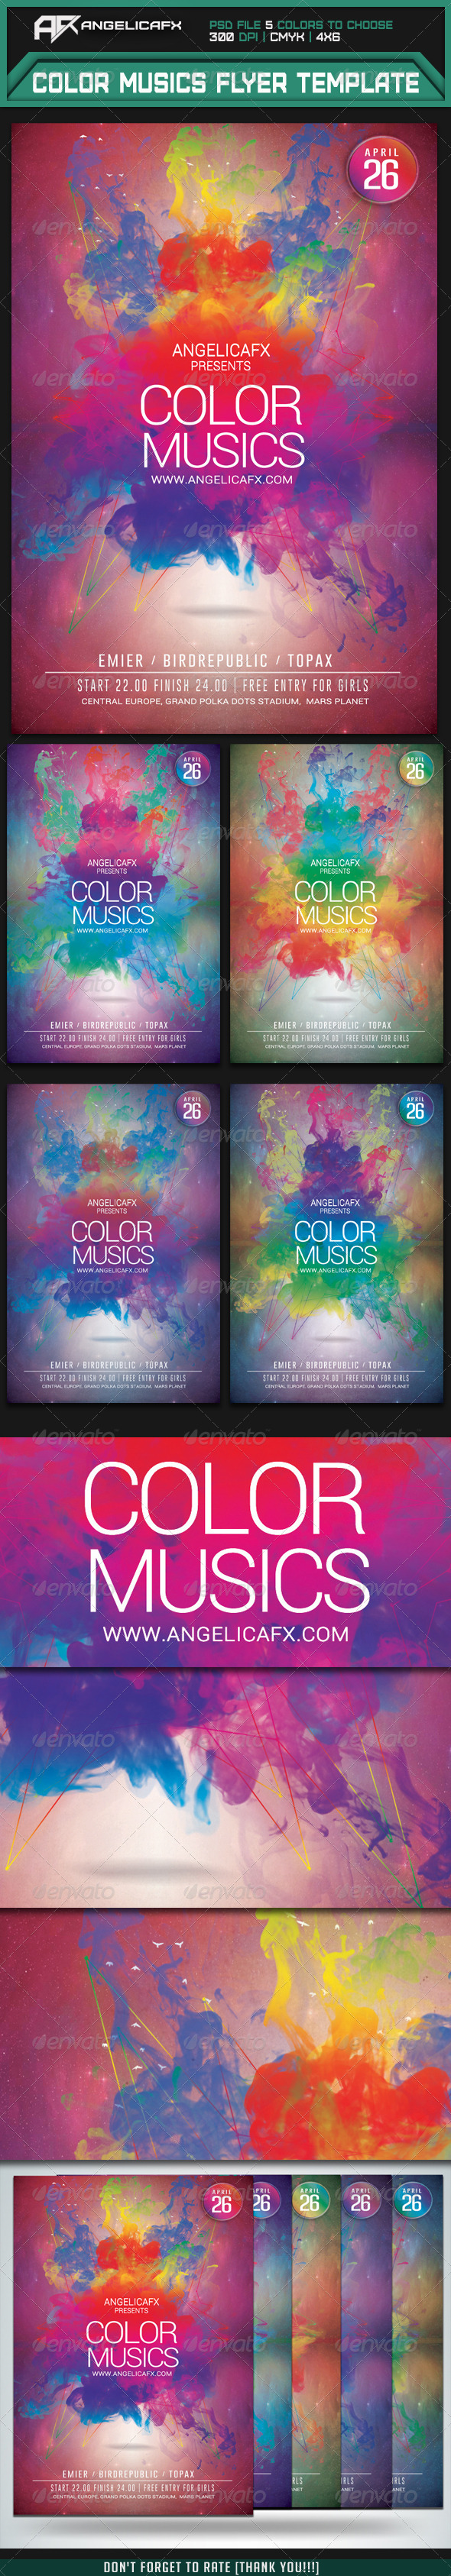 Color Music Flyer Template - Flyers Print Templates